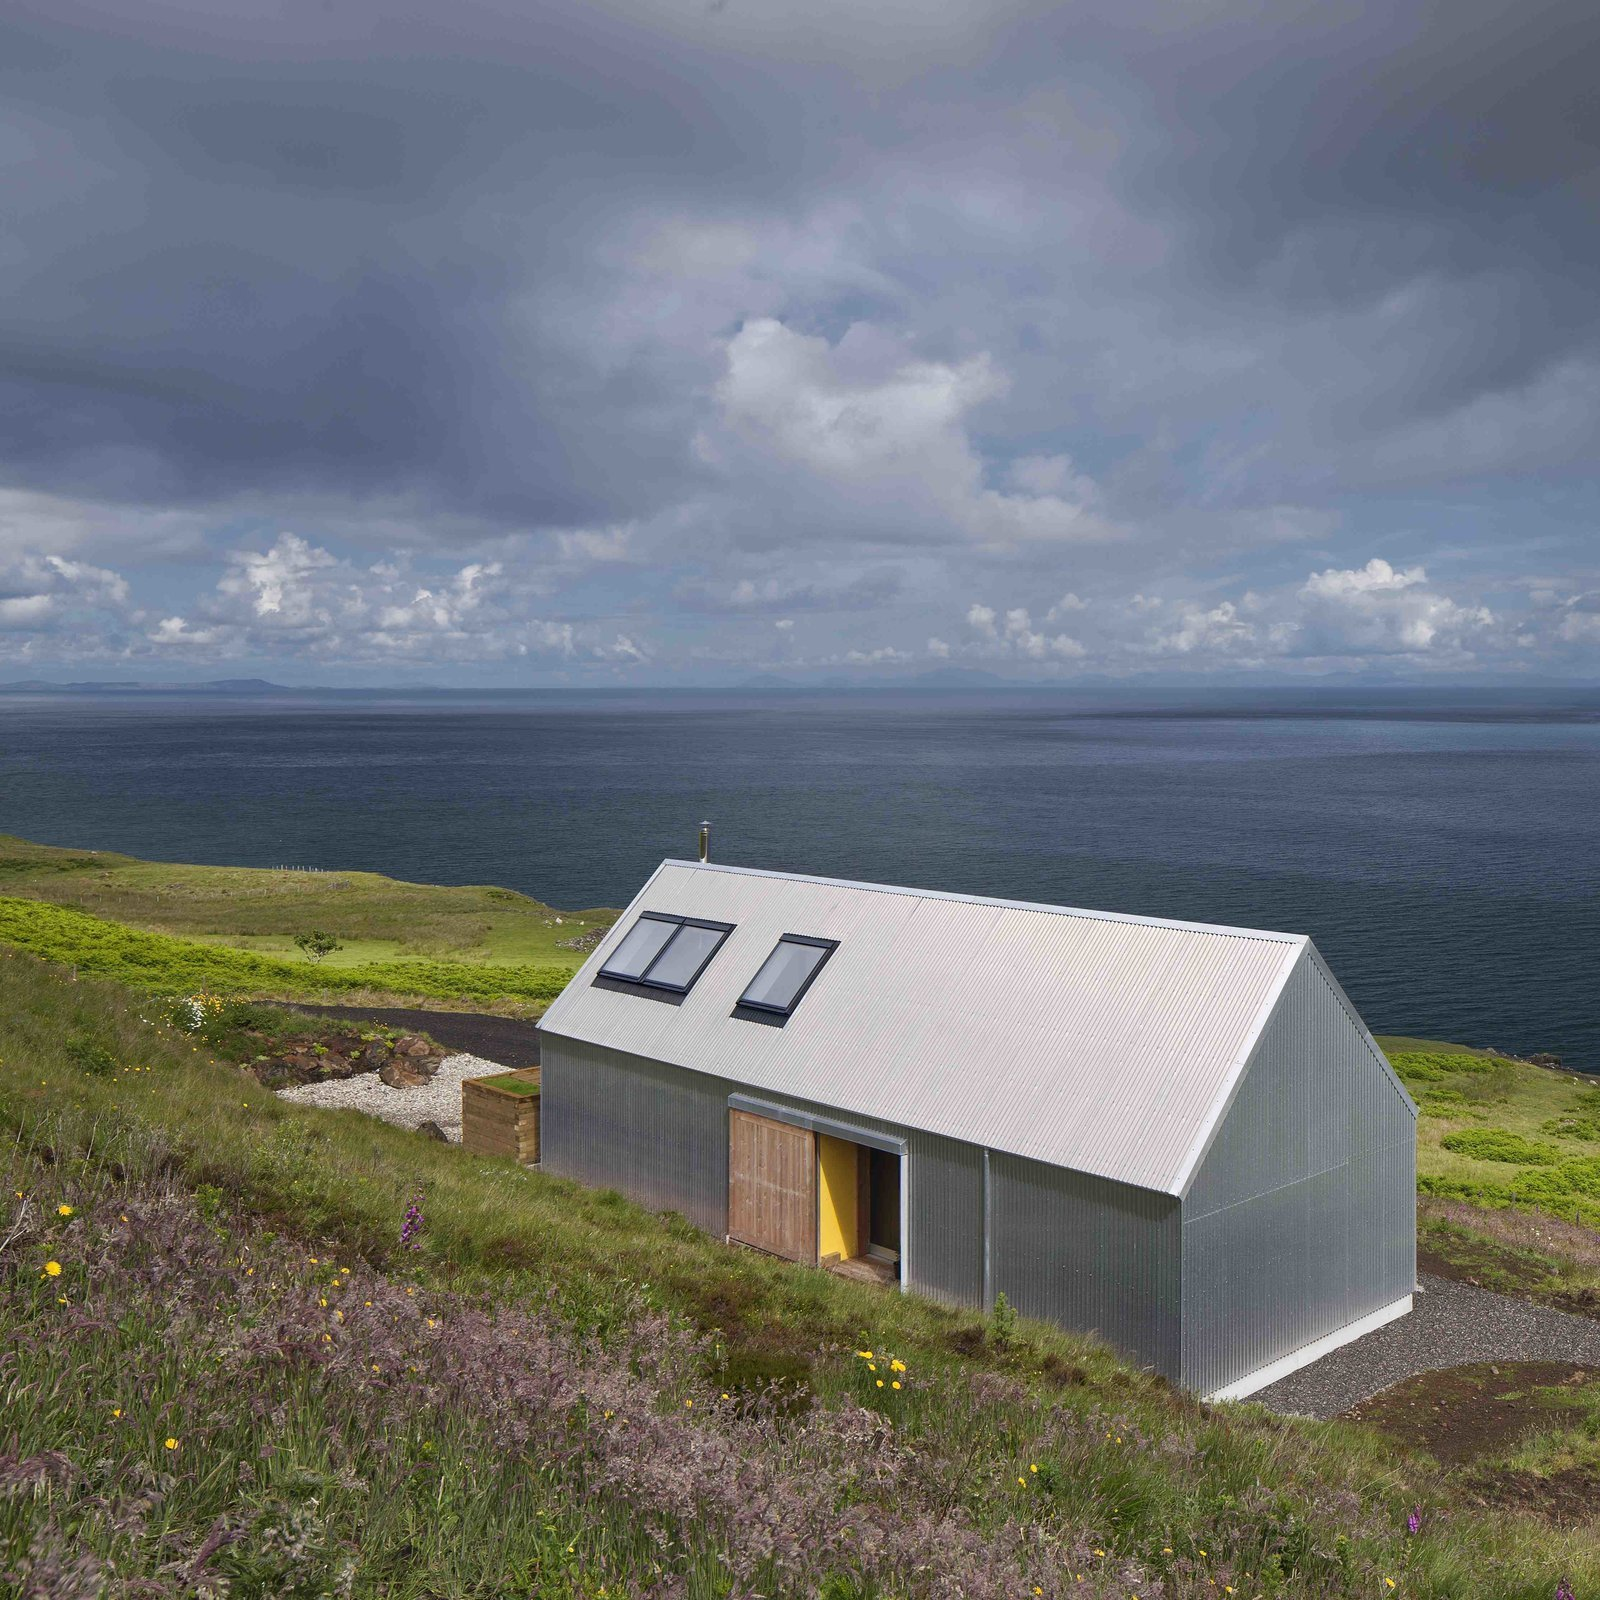 Though not made of stone or brick like the other holiday homes, this two-person escape on Scotland's picturesque Isle of Skye, designed by Rural Design Architects was made with corrugated metal, a material that is commonly used for agricultural sheds or Tagged: Exterior, House, Metal Siding Material, and Metal Roof Material.  Best Photos from 9 Traditional-Turned-Modern Cottages You Can Rent in the UK